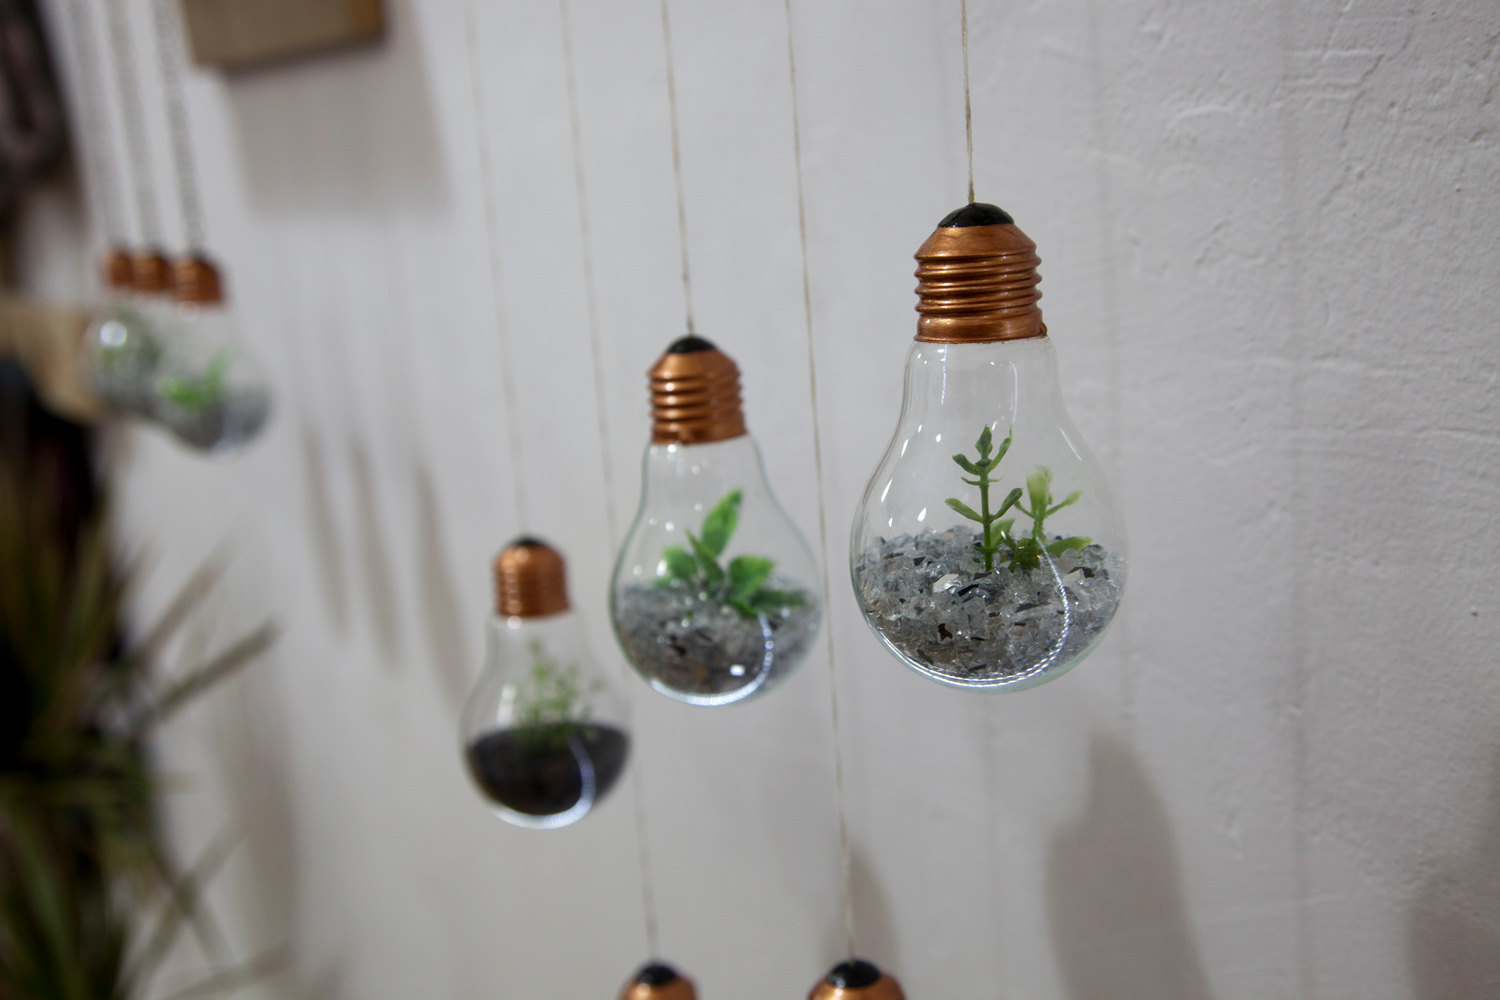 cute little light bulb hangers